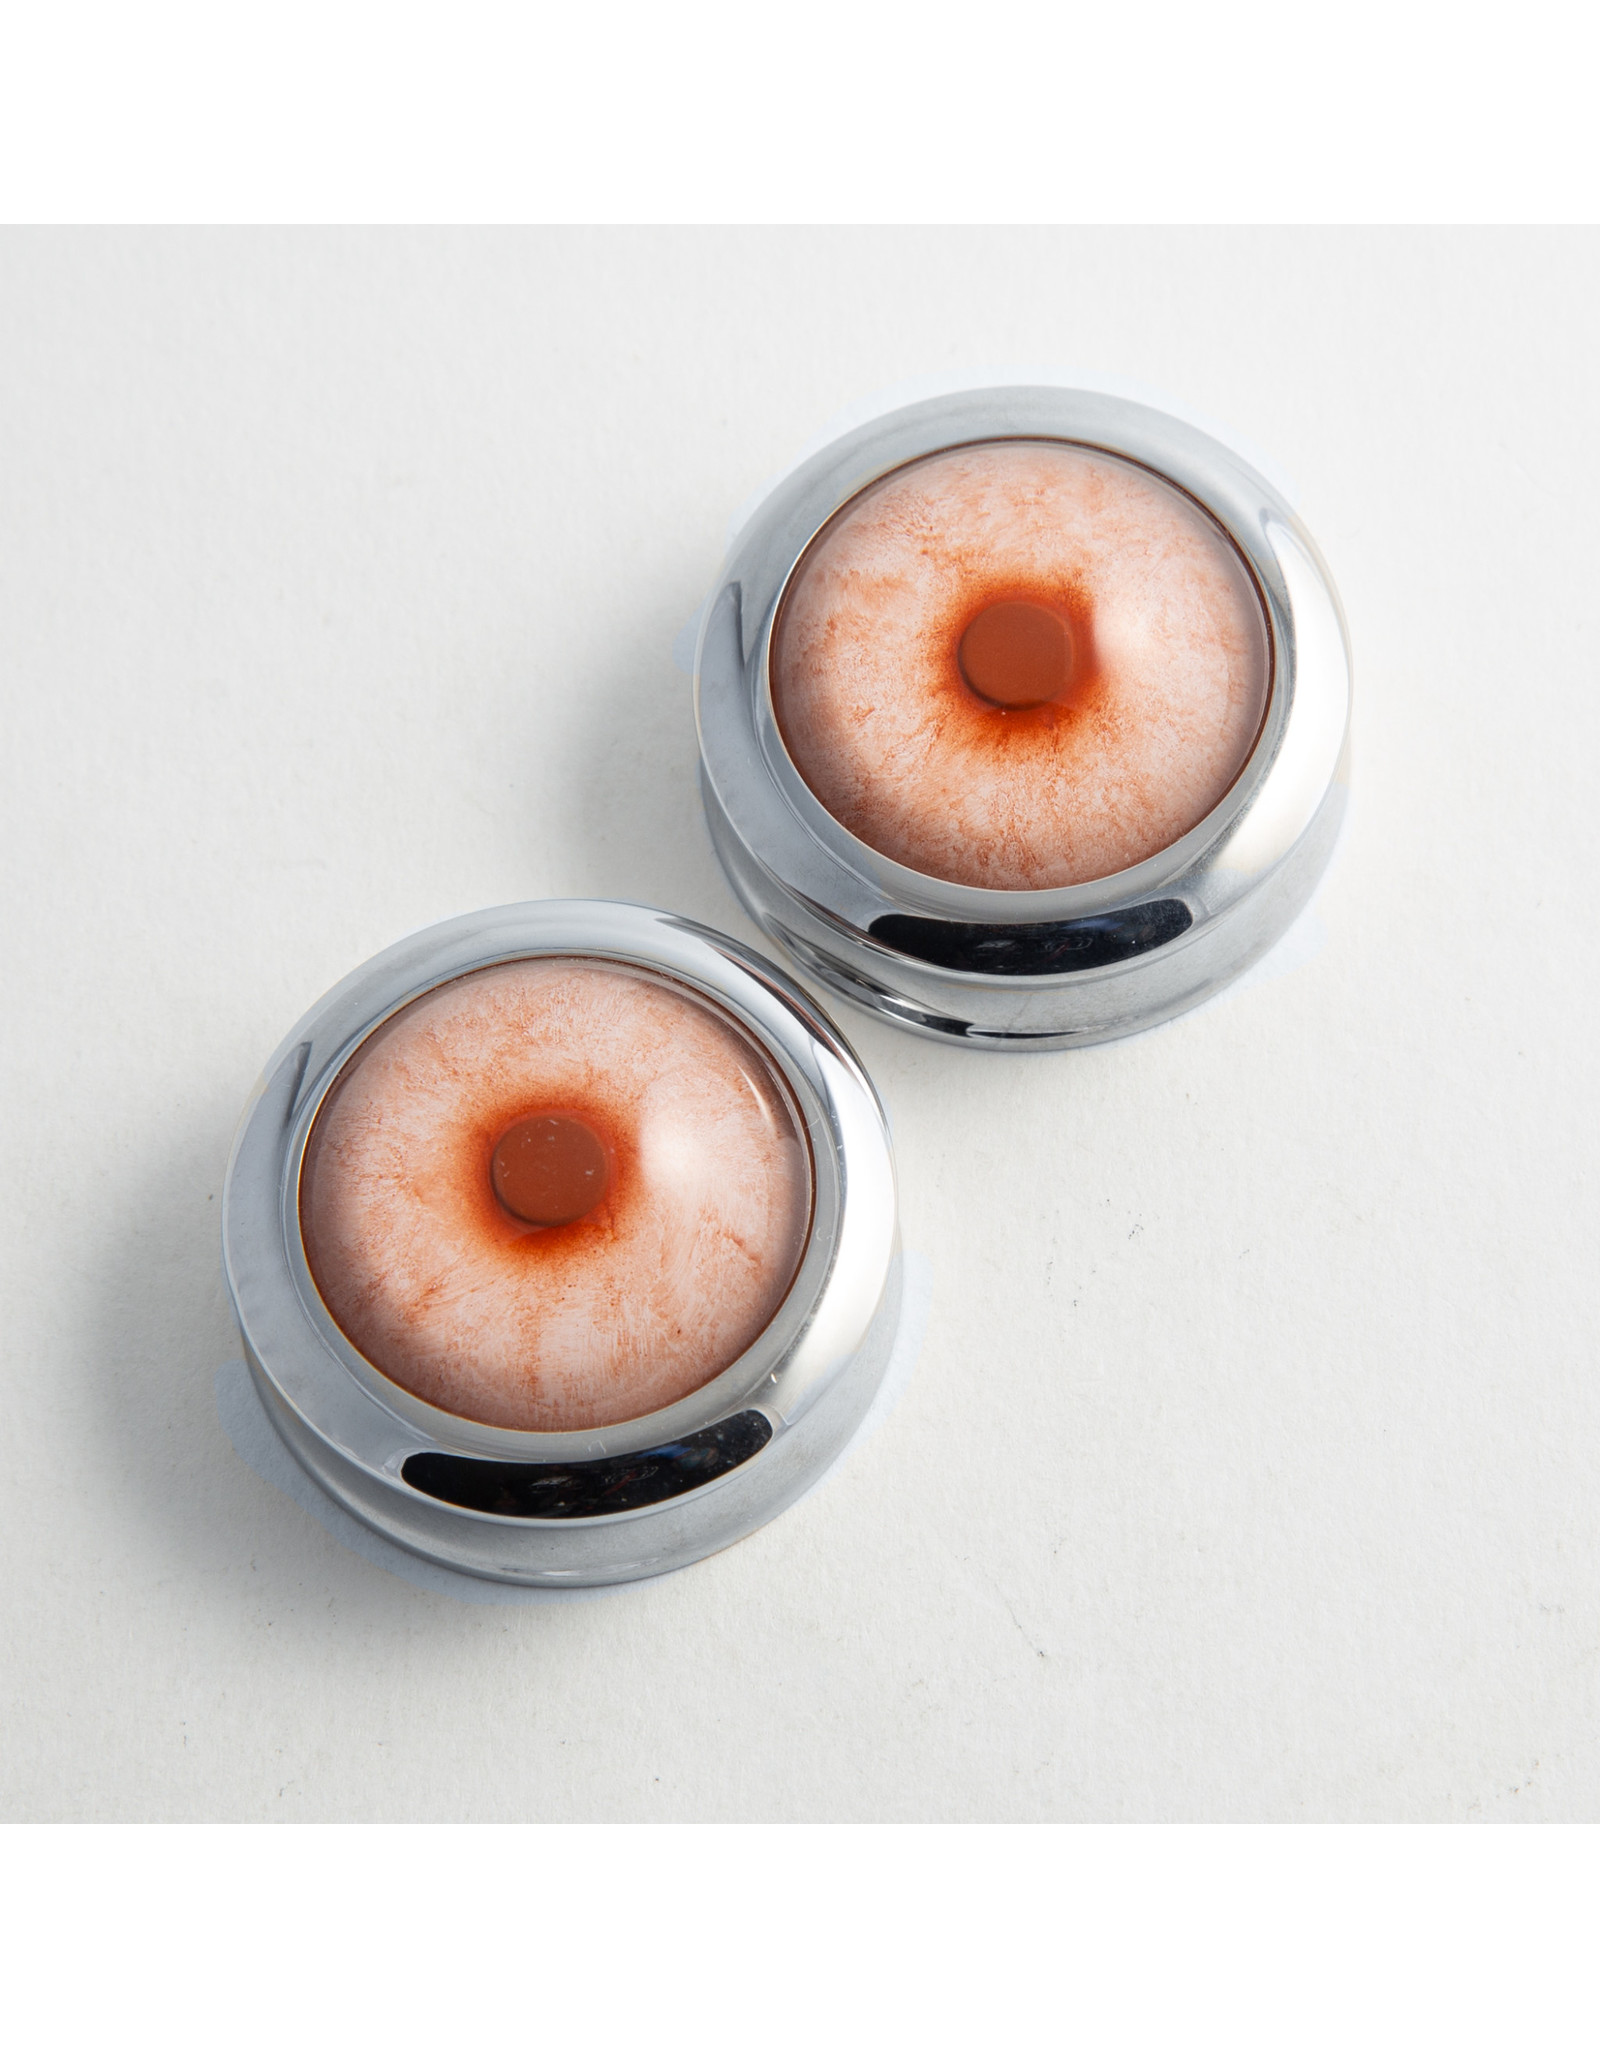 Reign Custom Design Reign 1-1/2 steel albino taxidermy eye double flared plugs